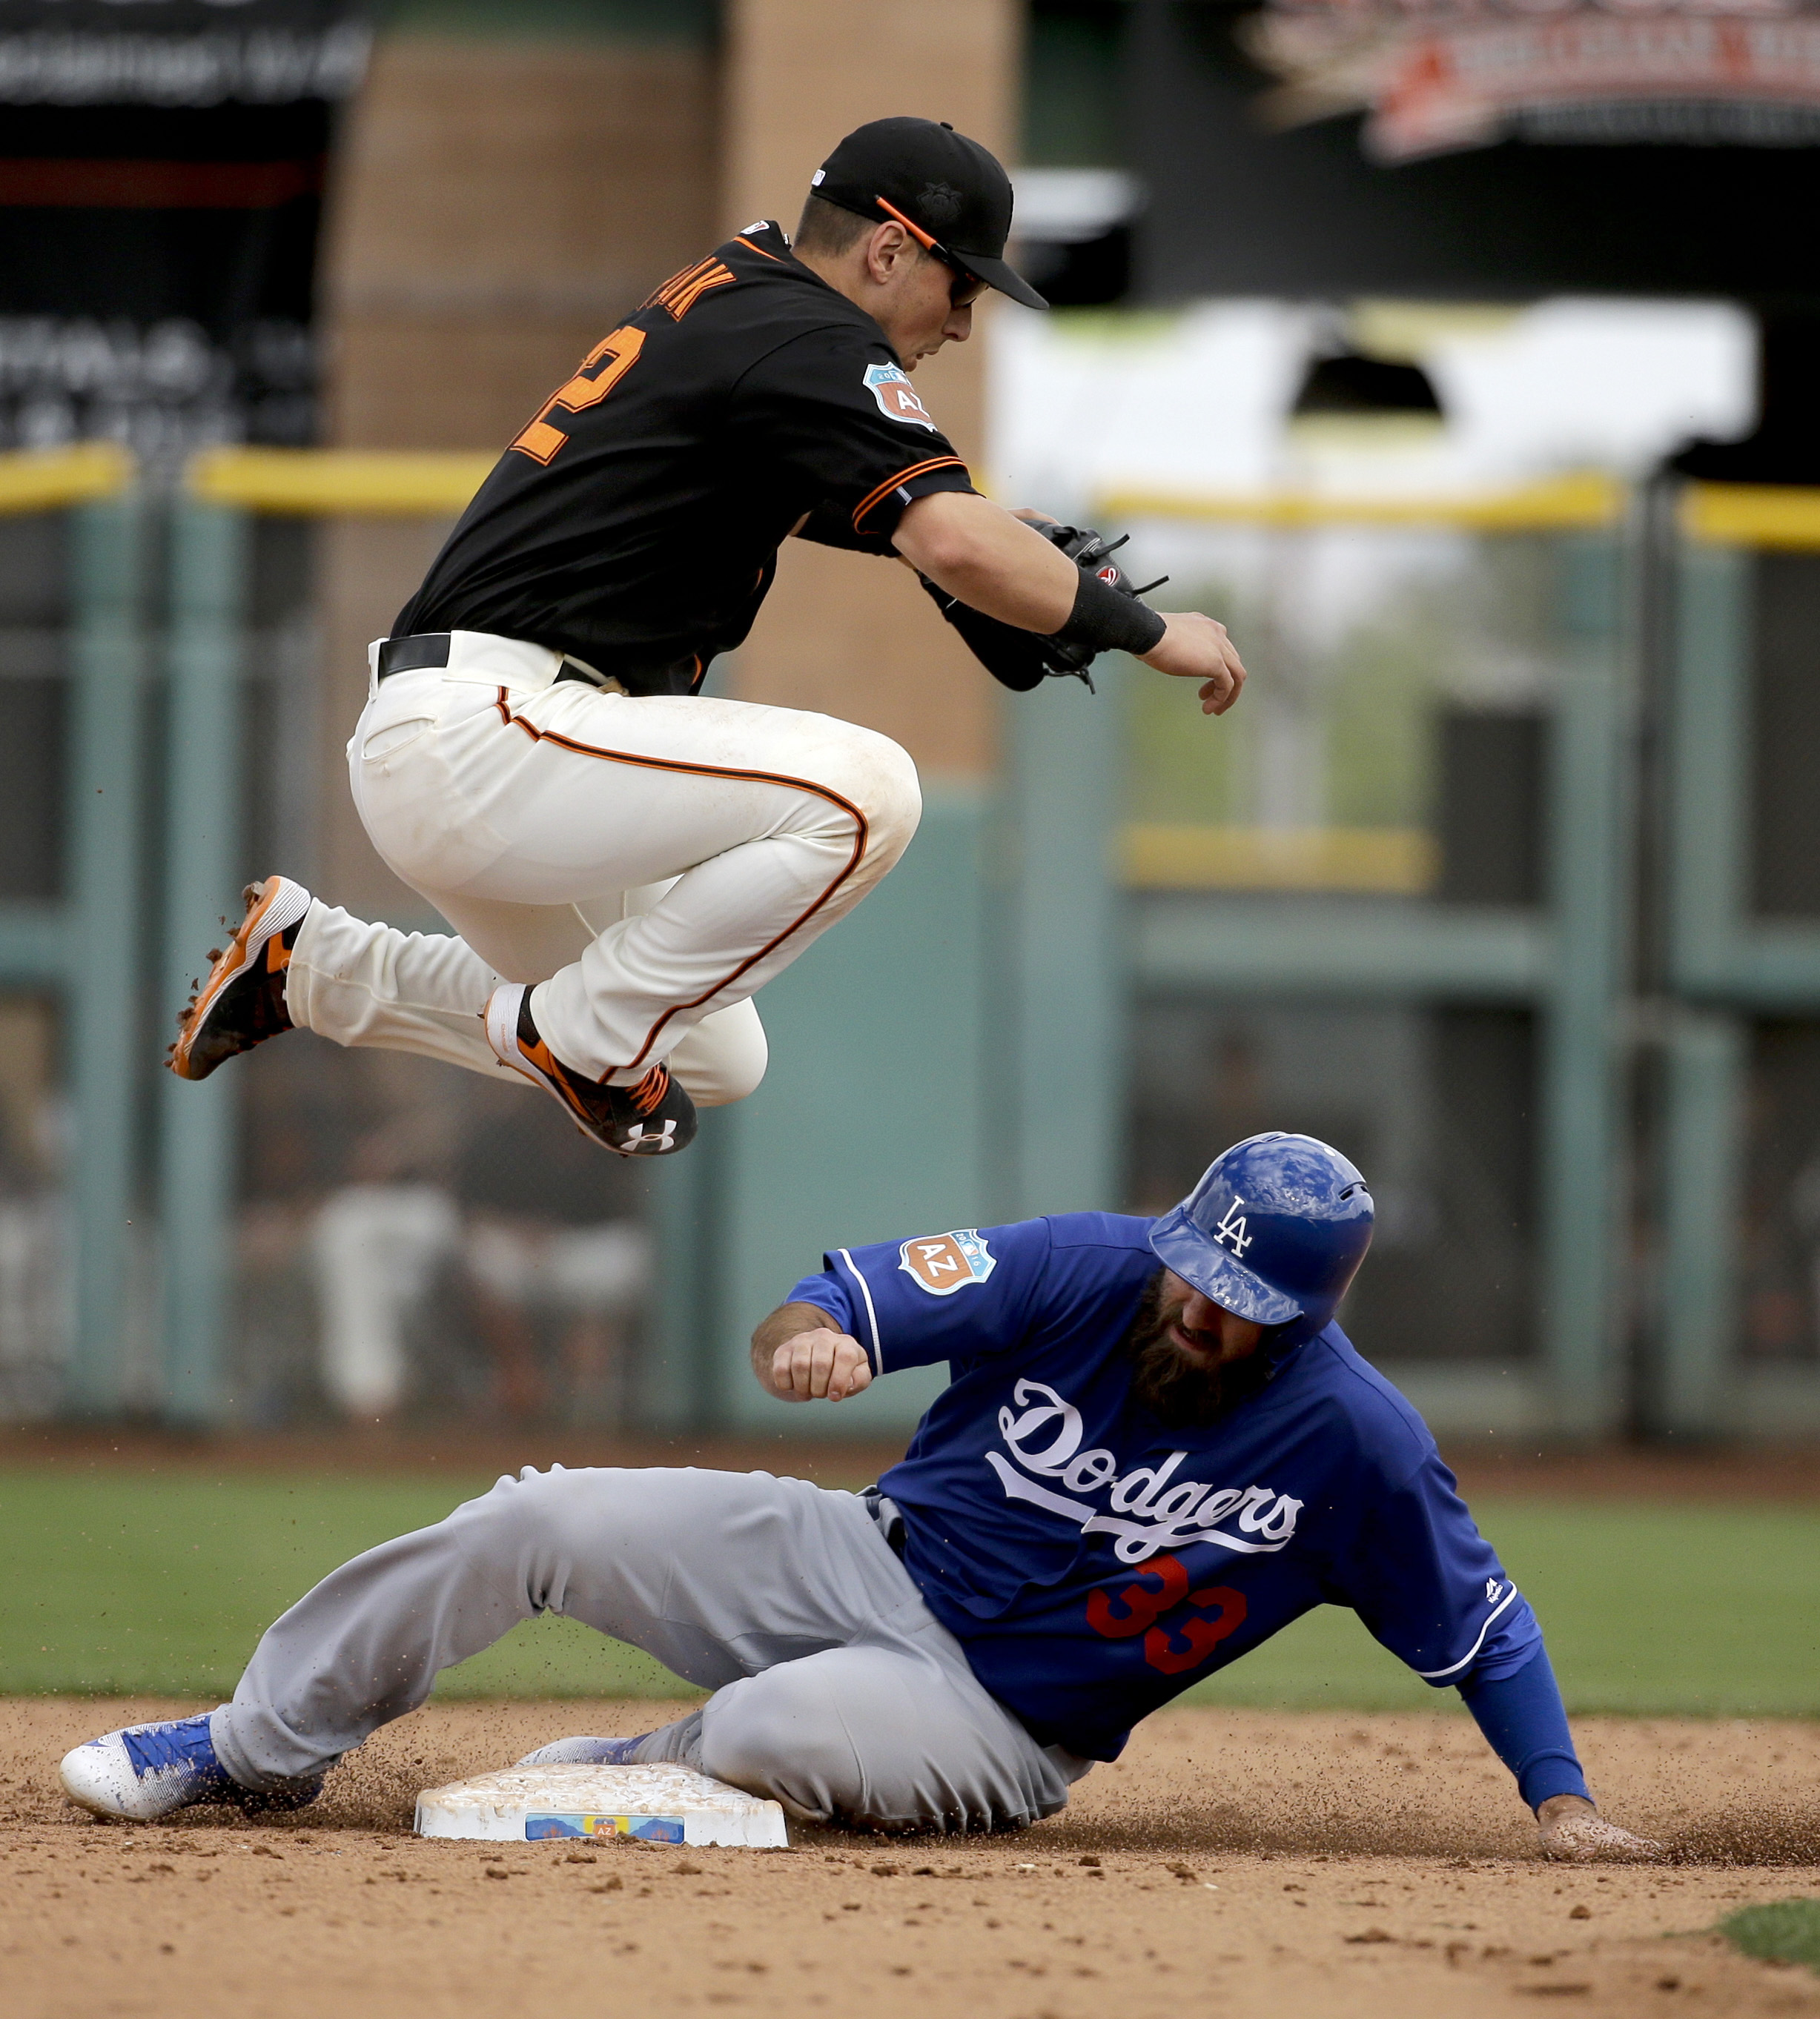 San Francisco Giants second baseman Joe Panik, top, forces Los Angeles Dodgers' Scott Van Slyke, bottom, out at second after A.J. Ellis hit into a double play during sixth inning of a spring baseball game in Scottsdale, Ariz., Sunday, March 6, 2016. (AP P